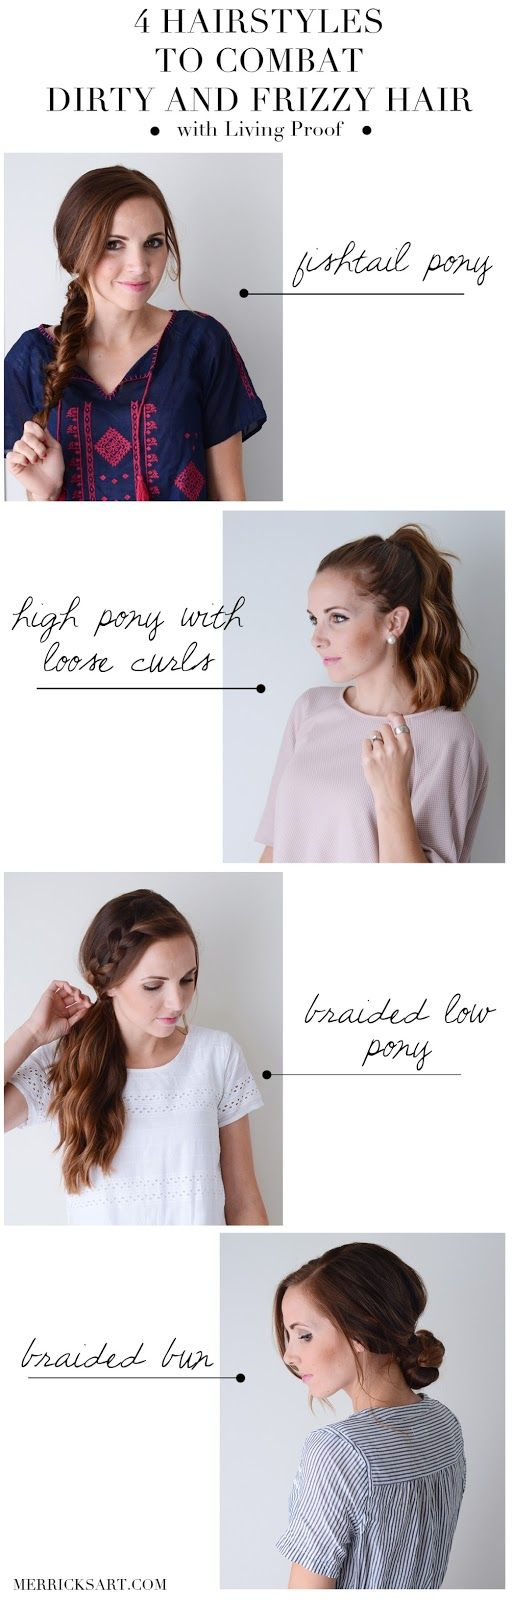 hairstyles for combating dirty and frizzy hair hair hair hair